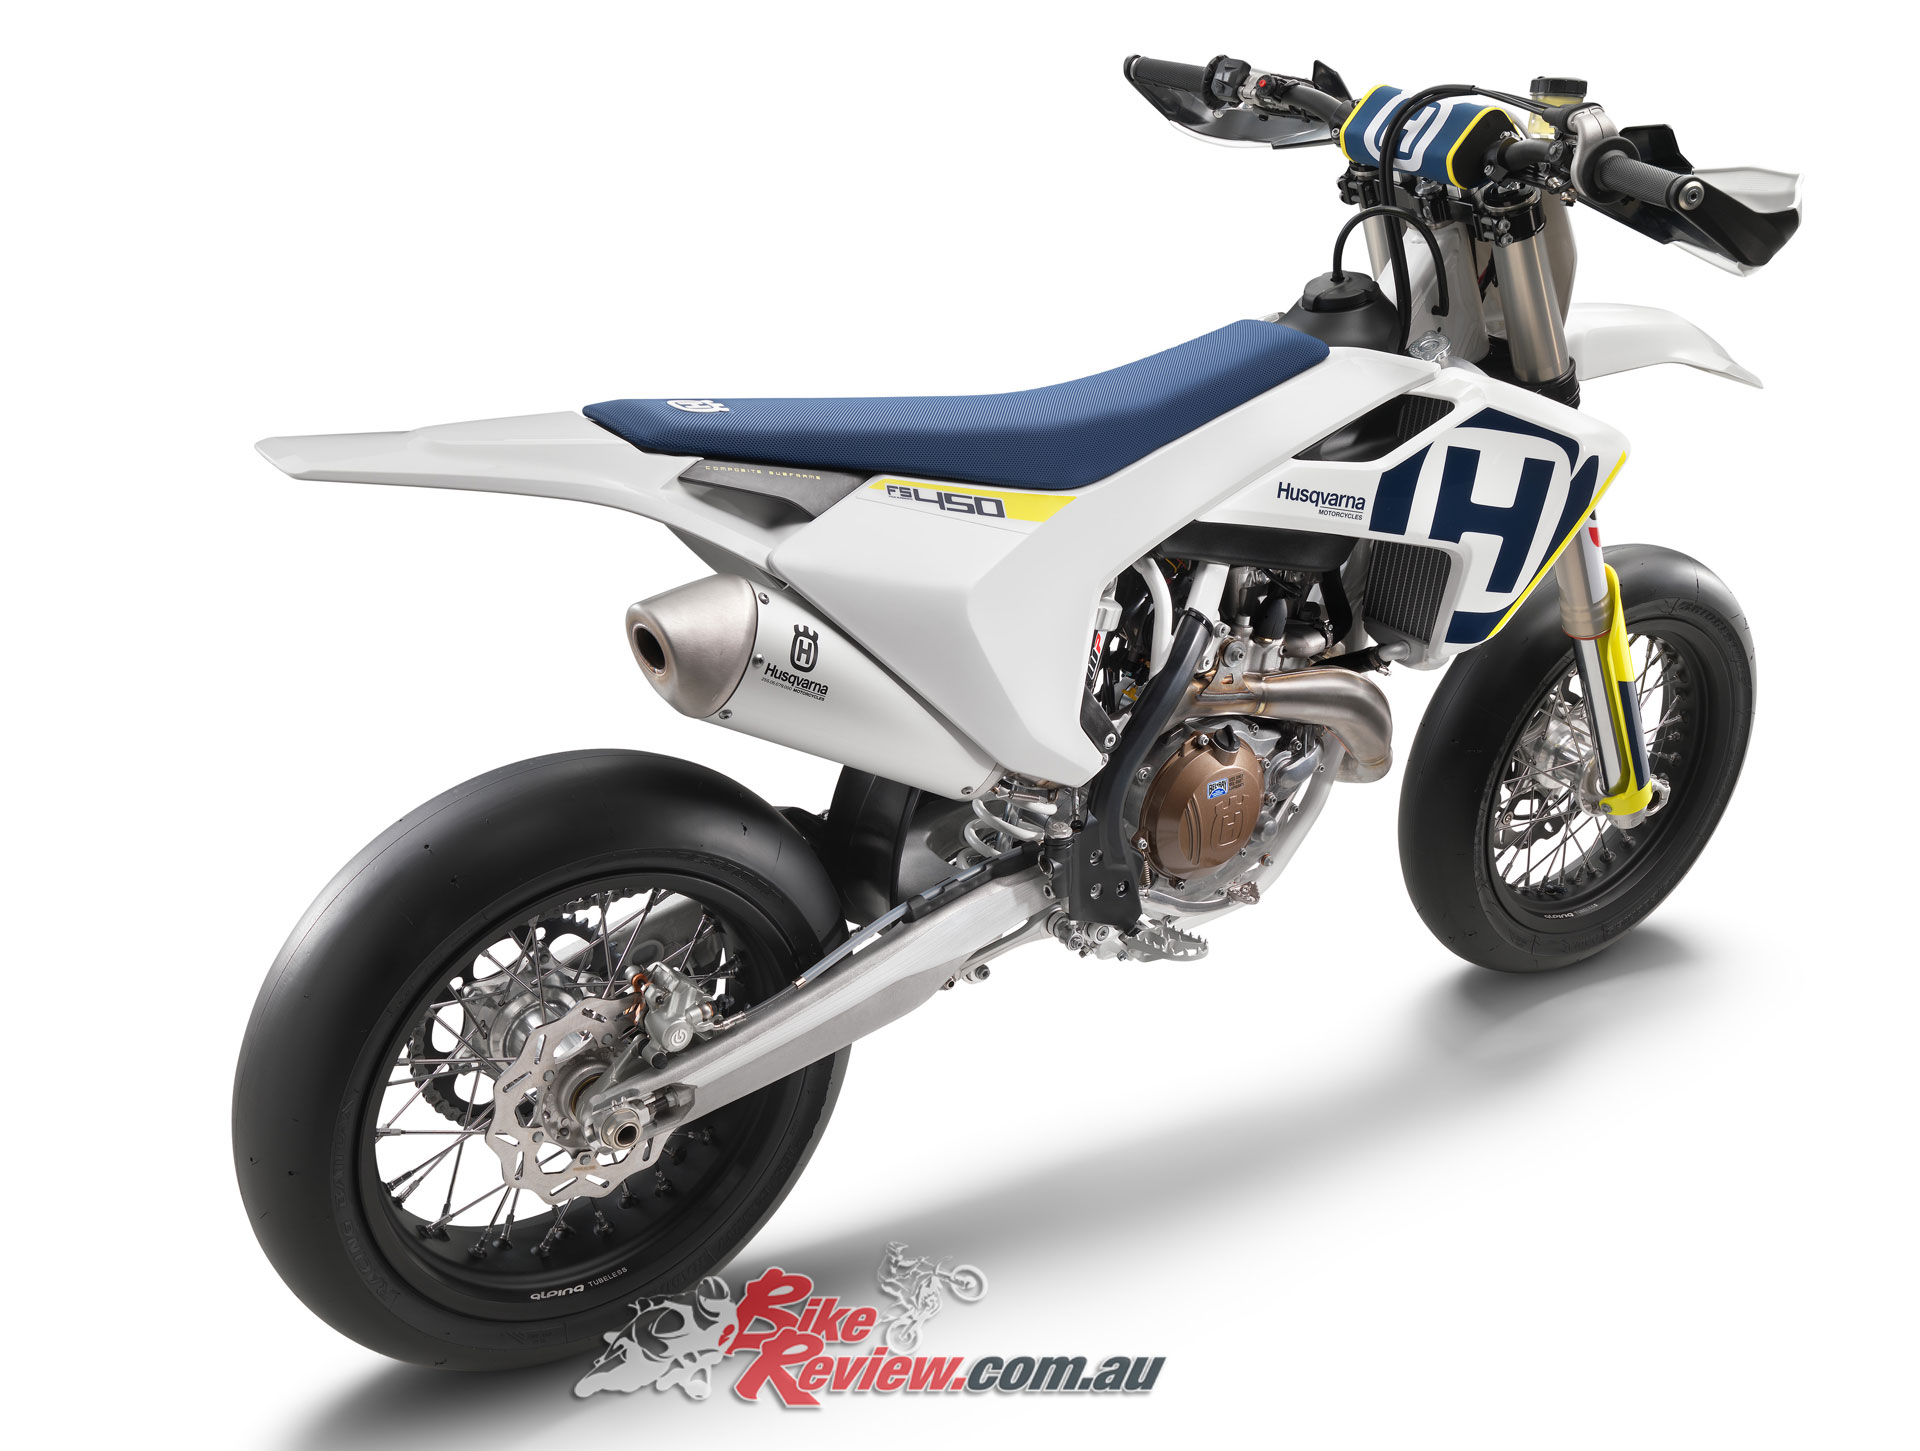 Husqvarna Sm 450r Bikes: Husqvarna Introduces New FS 450 Supermoto